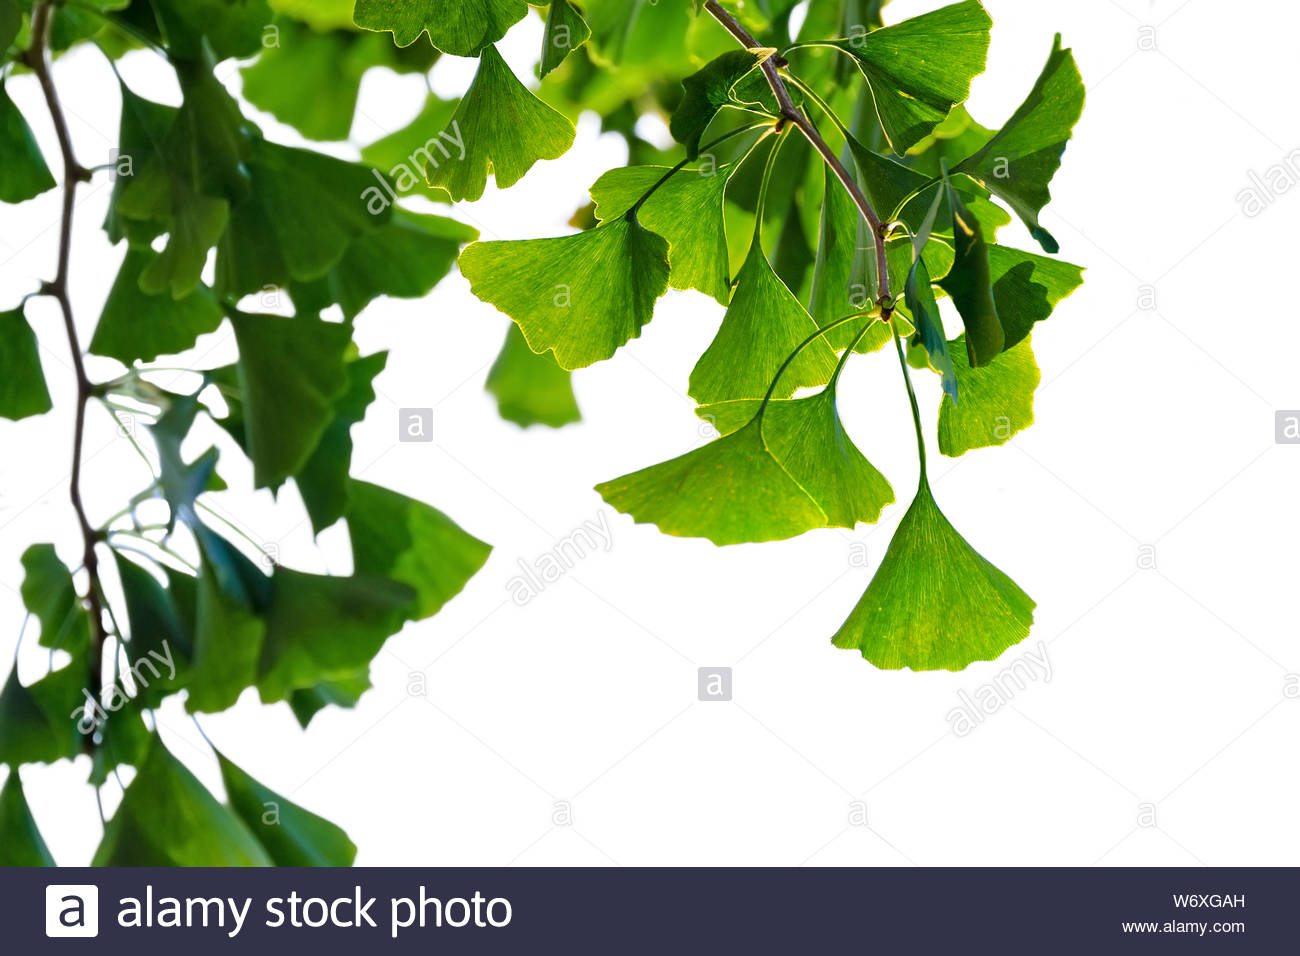 Ginkgo biloba tree with green leaves isolated on white background 1300x956